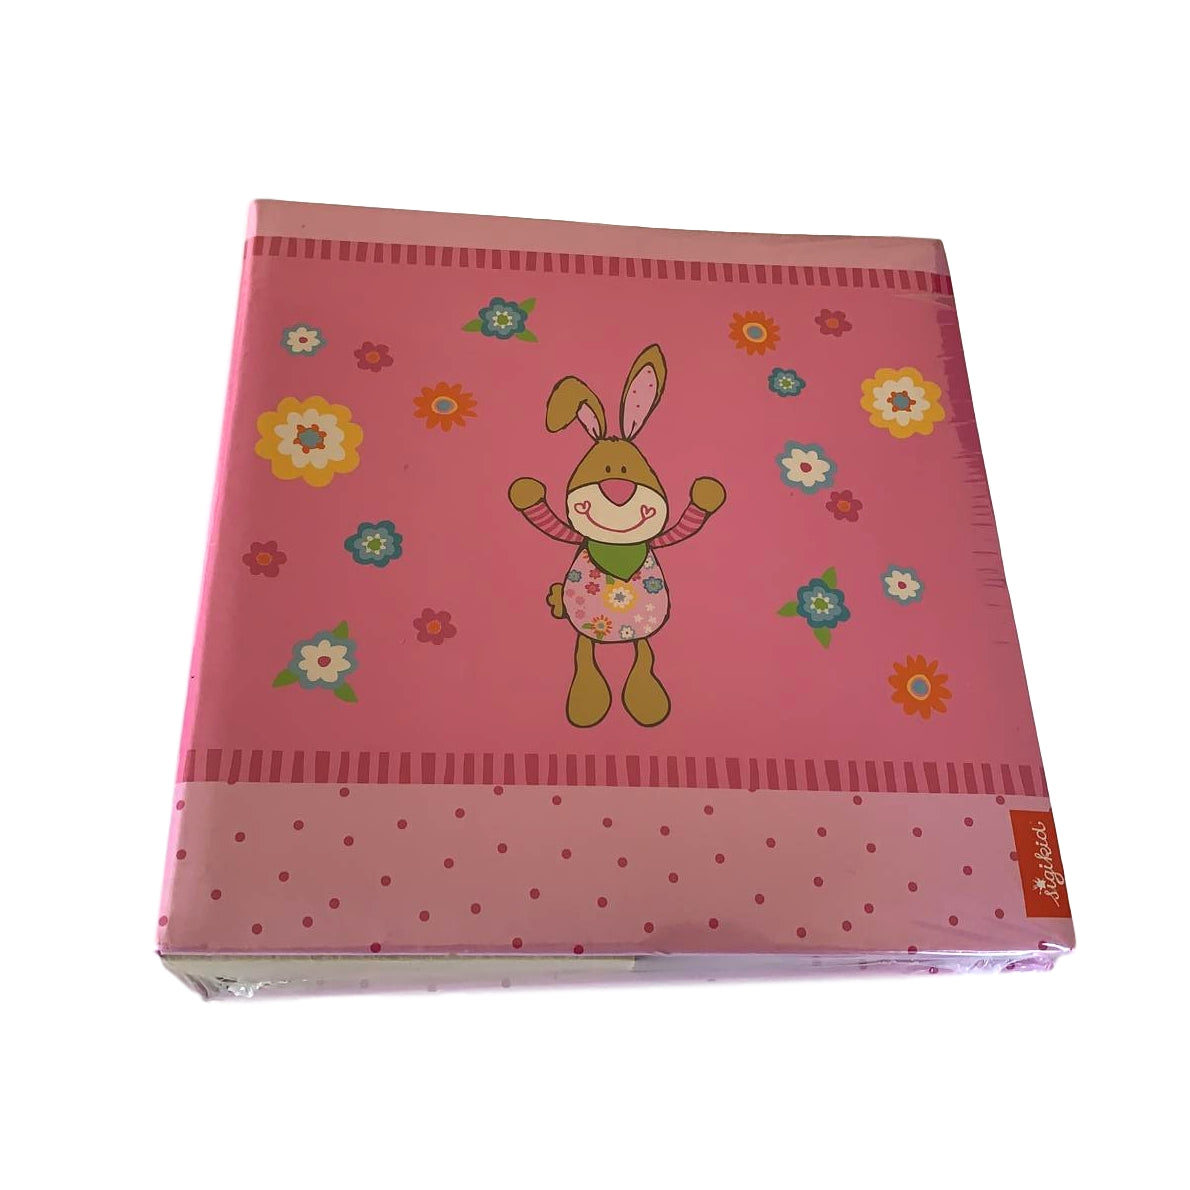 Bungee Bunny Pink Memo Album with CD Pocket